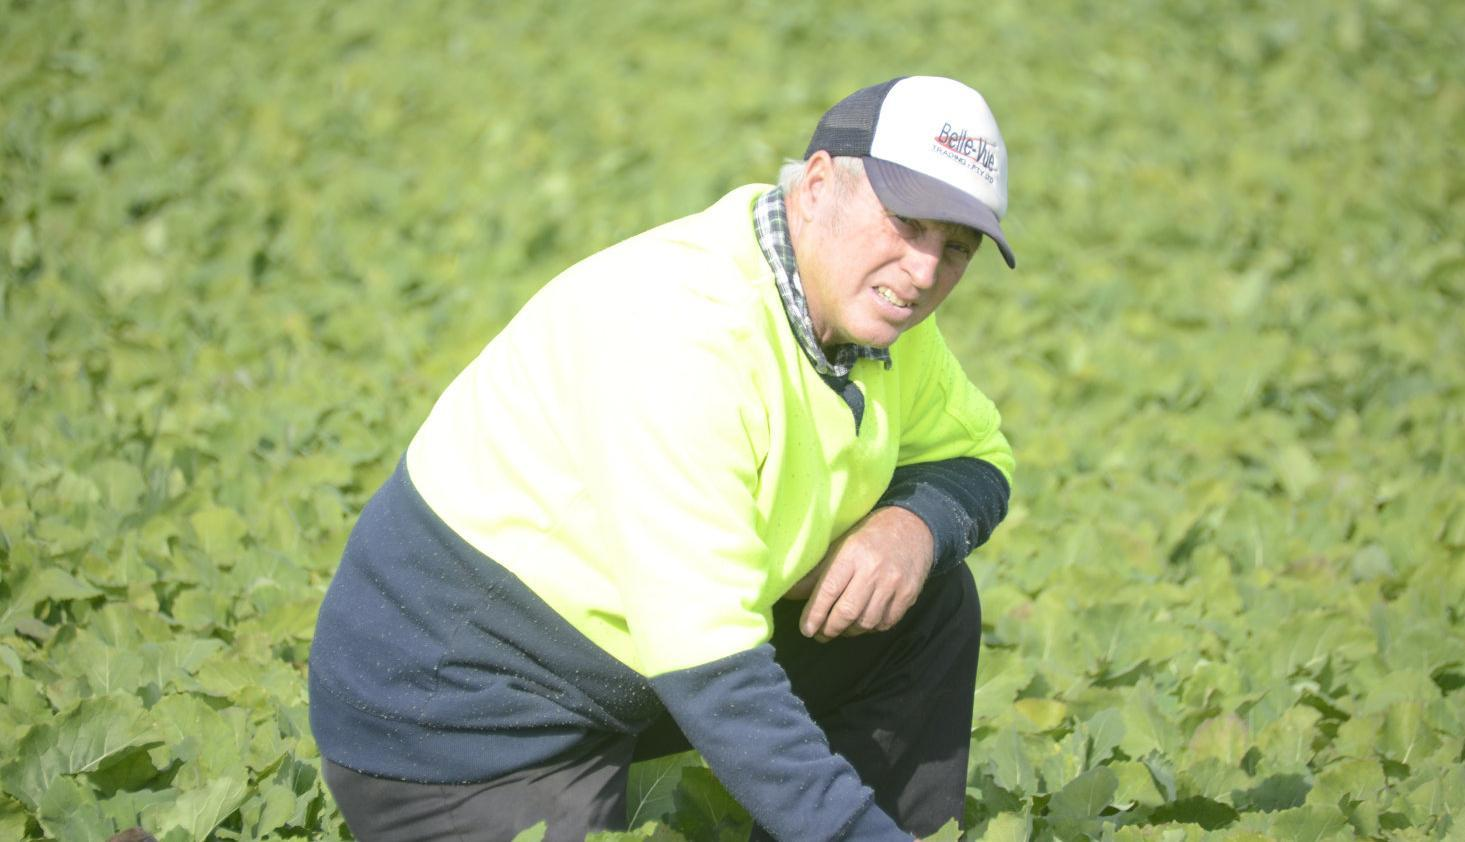 Crops in need of winter rain